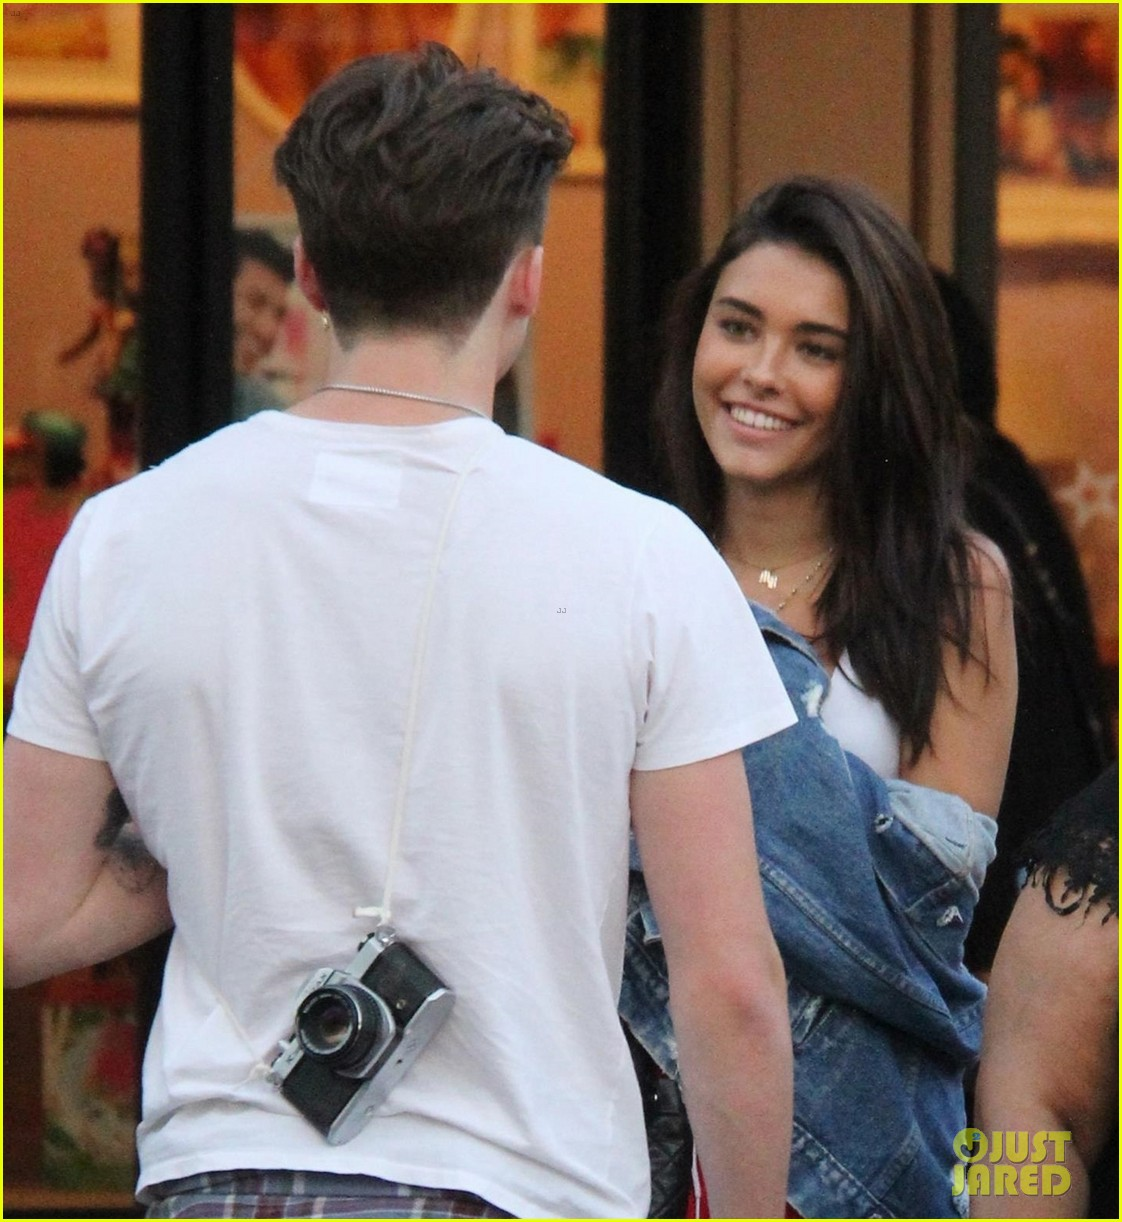 e7c5efbfa3 Madison Beer Looks at Brooklyn Beckham With So Much Joy!